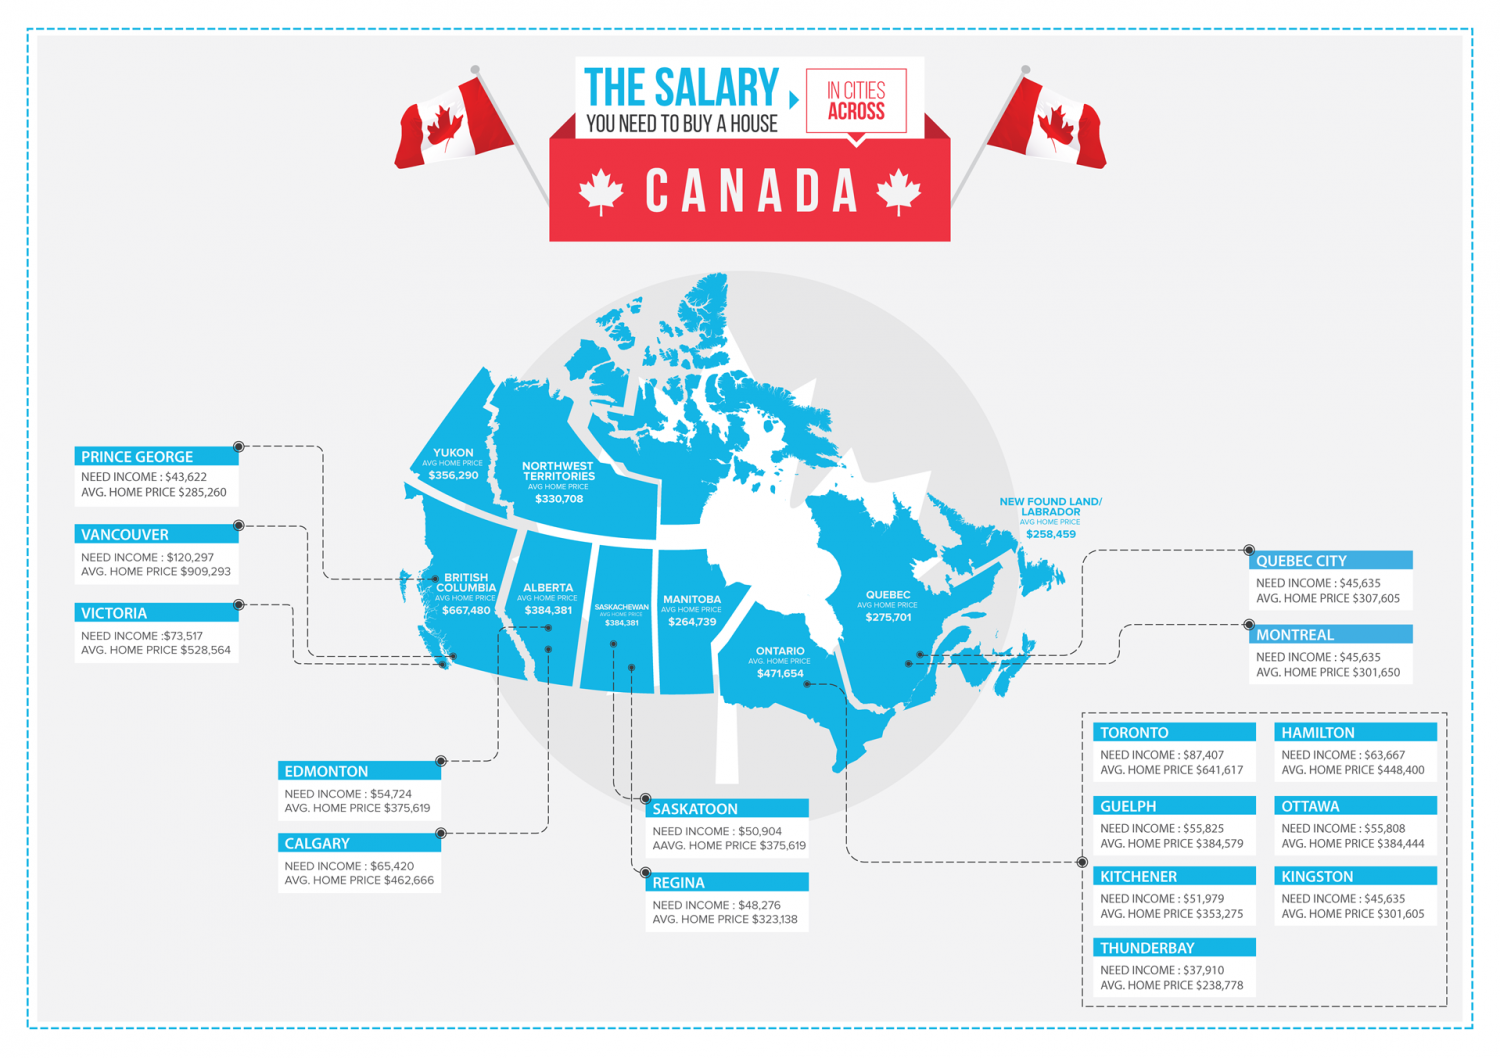 The Salary Needed to Buy a House in Cities Across Canada Infographic